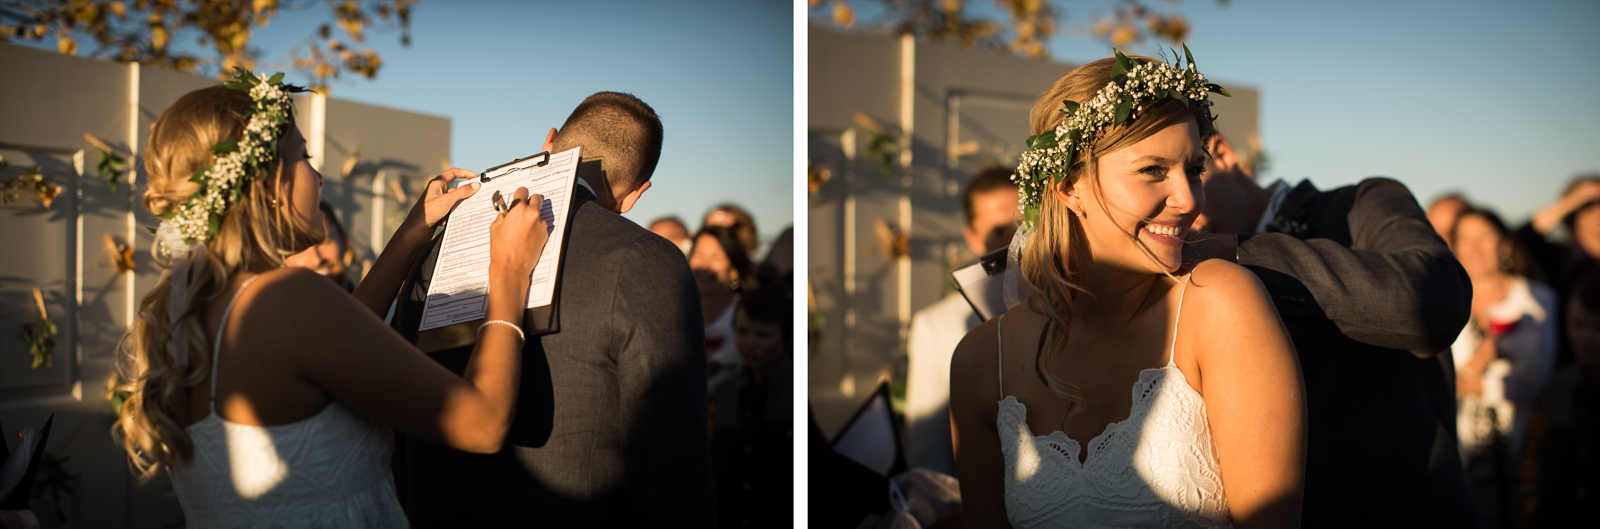 57-willow_and_wolf_photography_stef_and_pete_canmore_wedding_blog